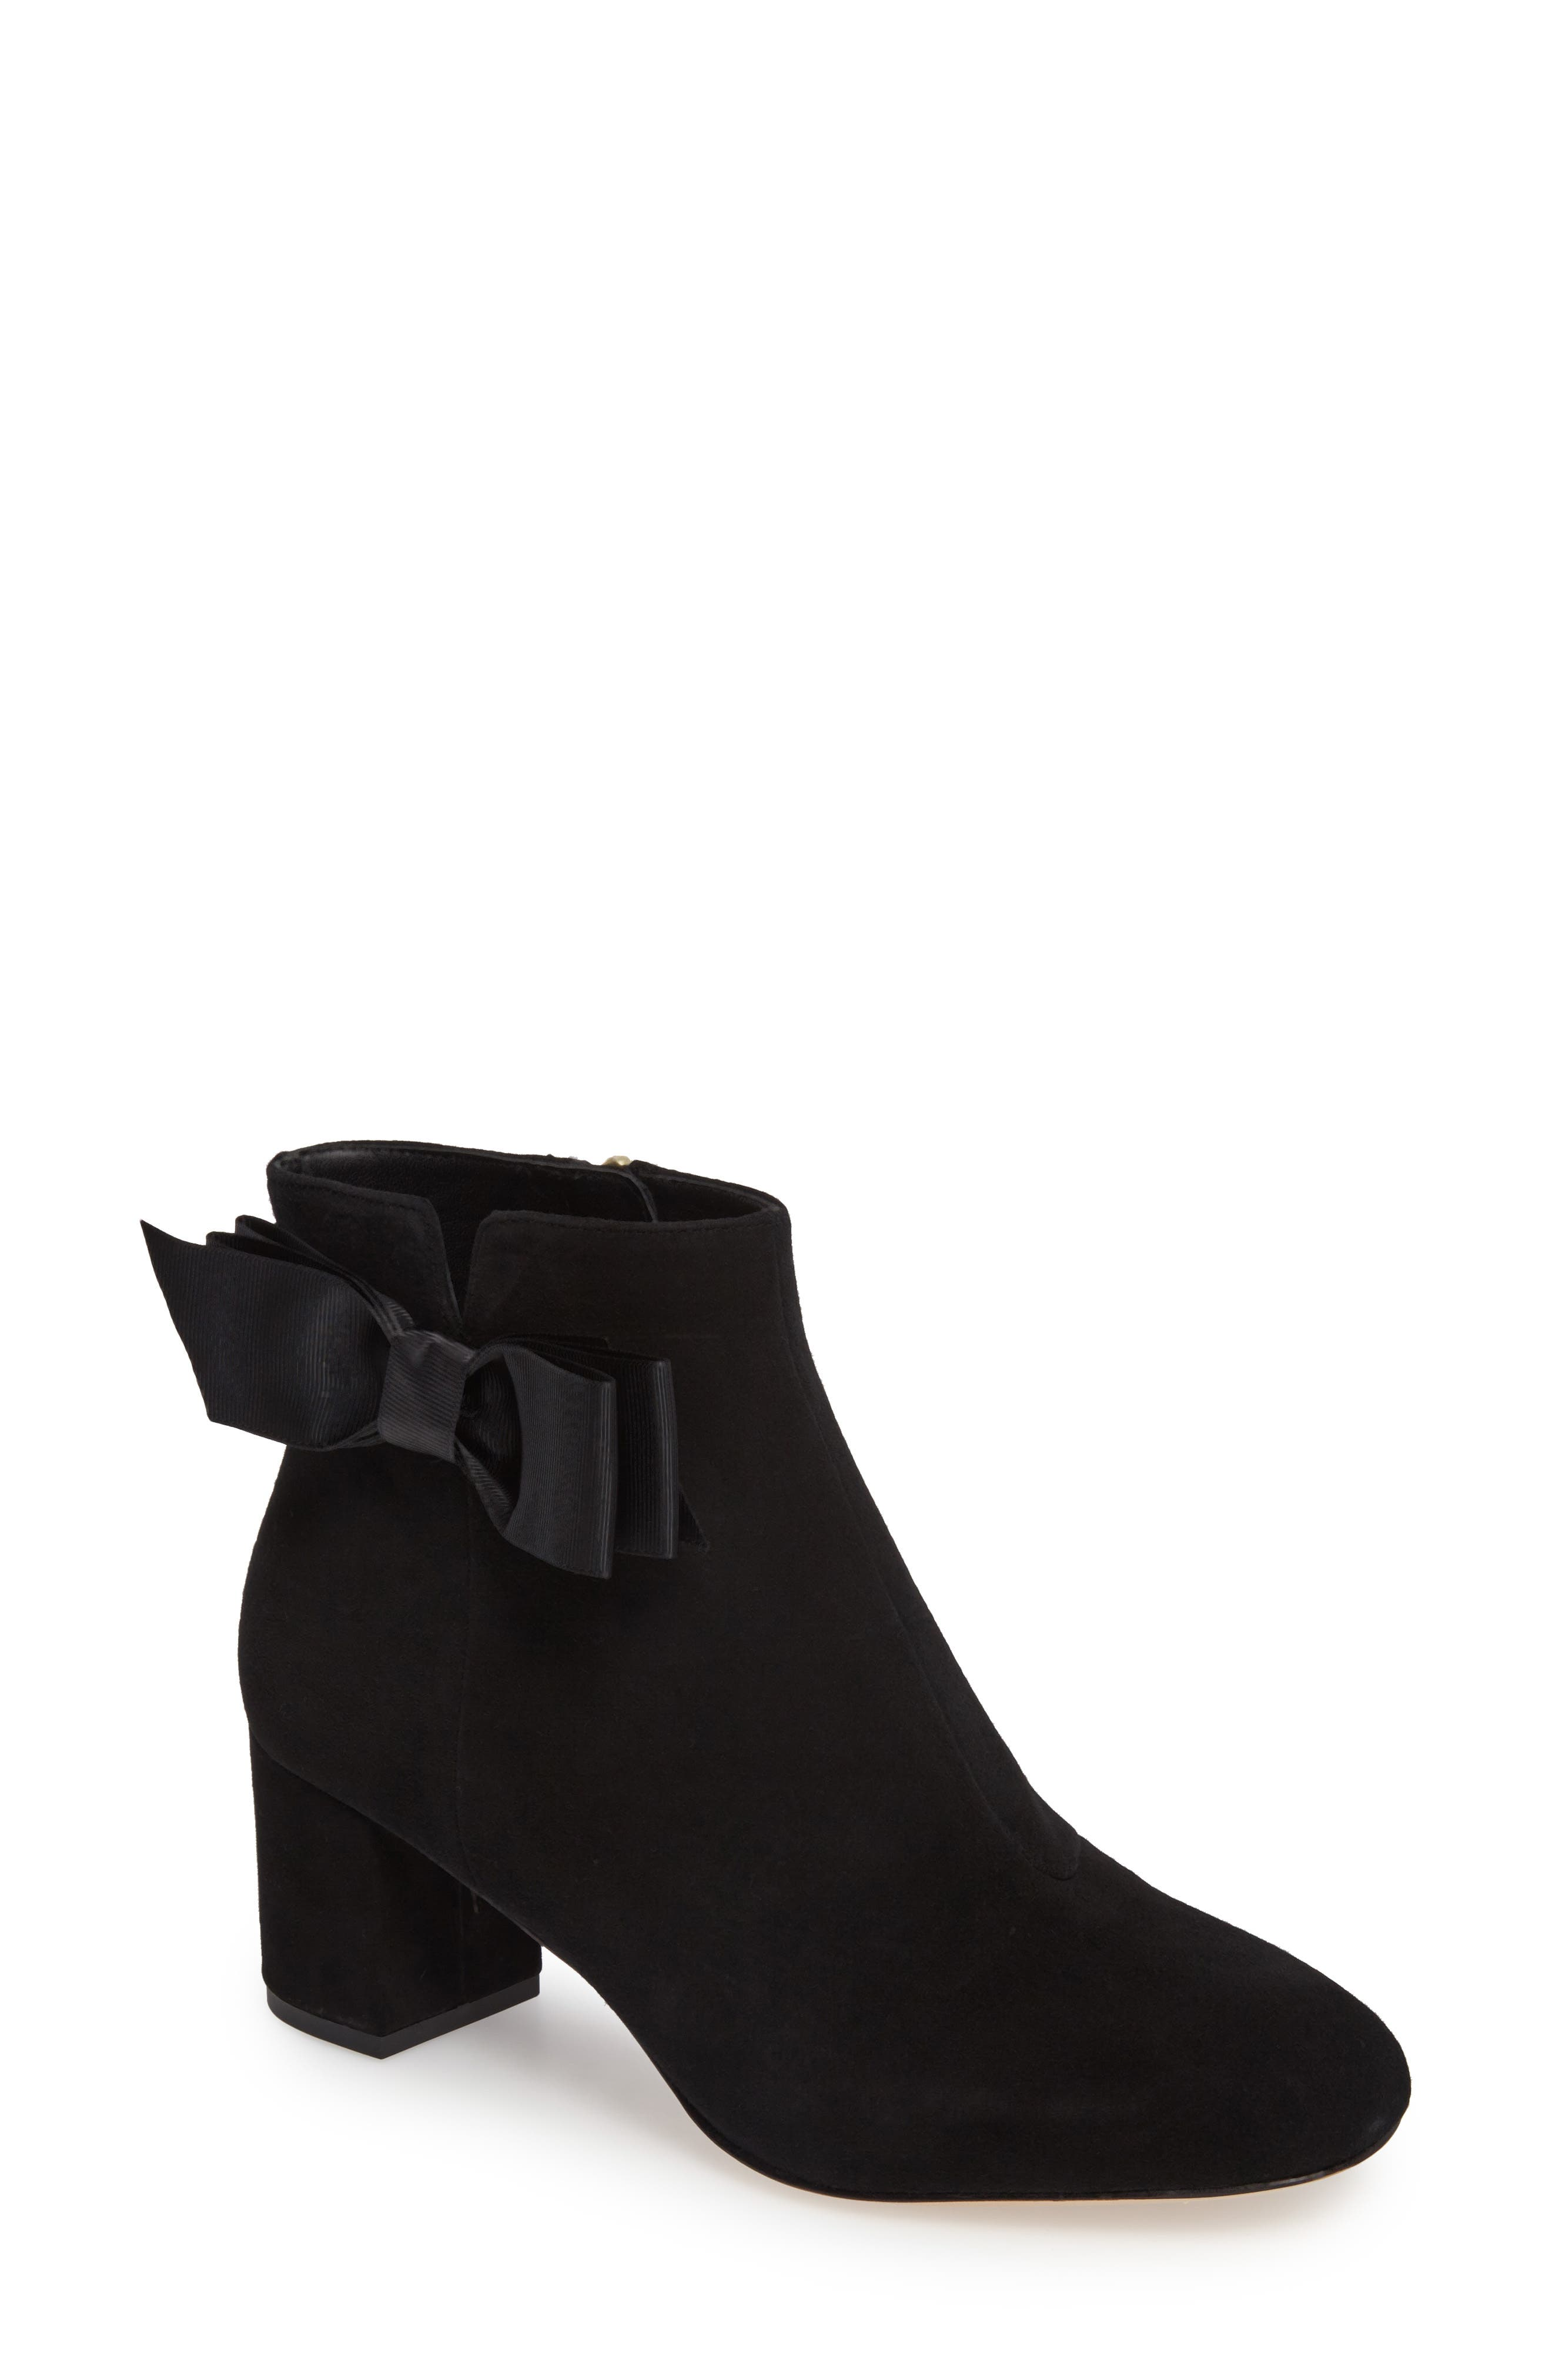 langley bow bootie,                         Main,                         color, 001